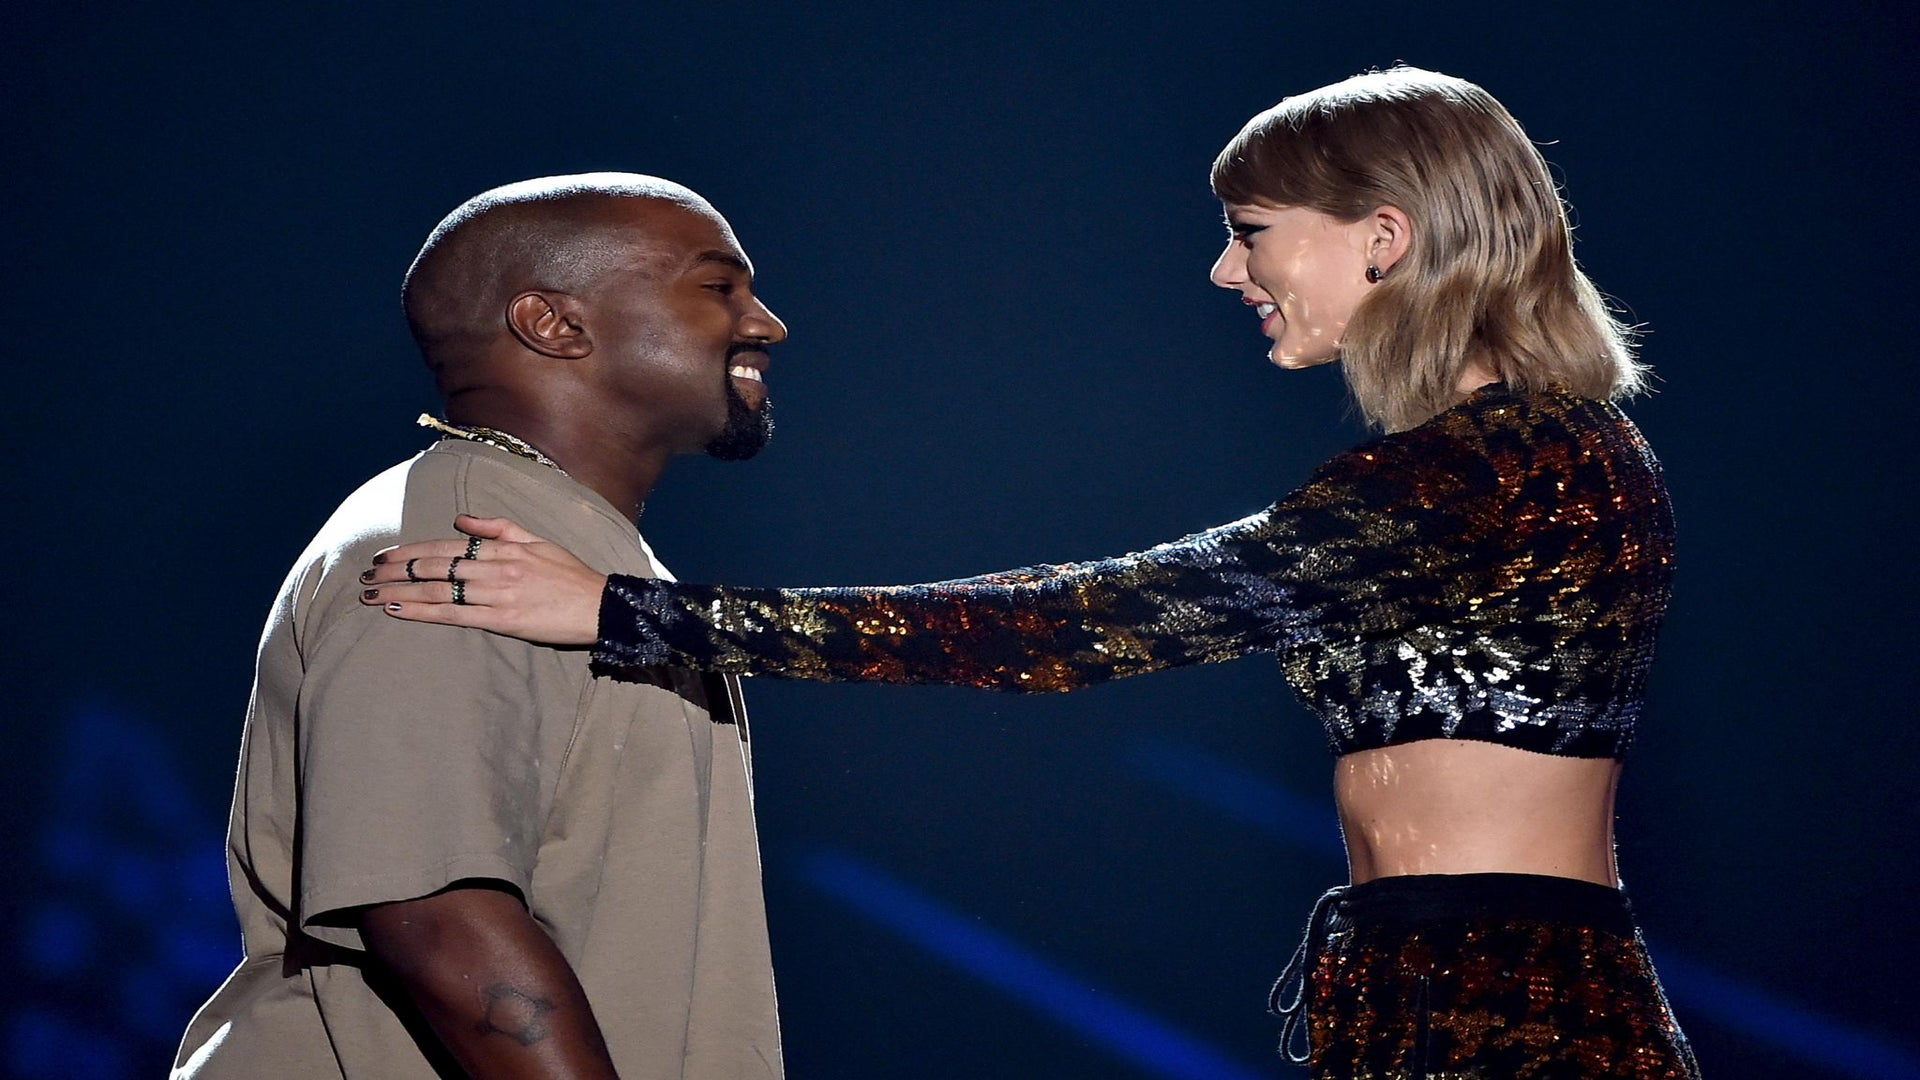 Did Kanye West Really Get Taylor Swift's Blessing for His Controversial Lyrics on 'Famous'?